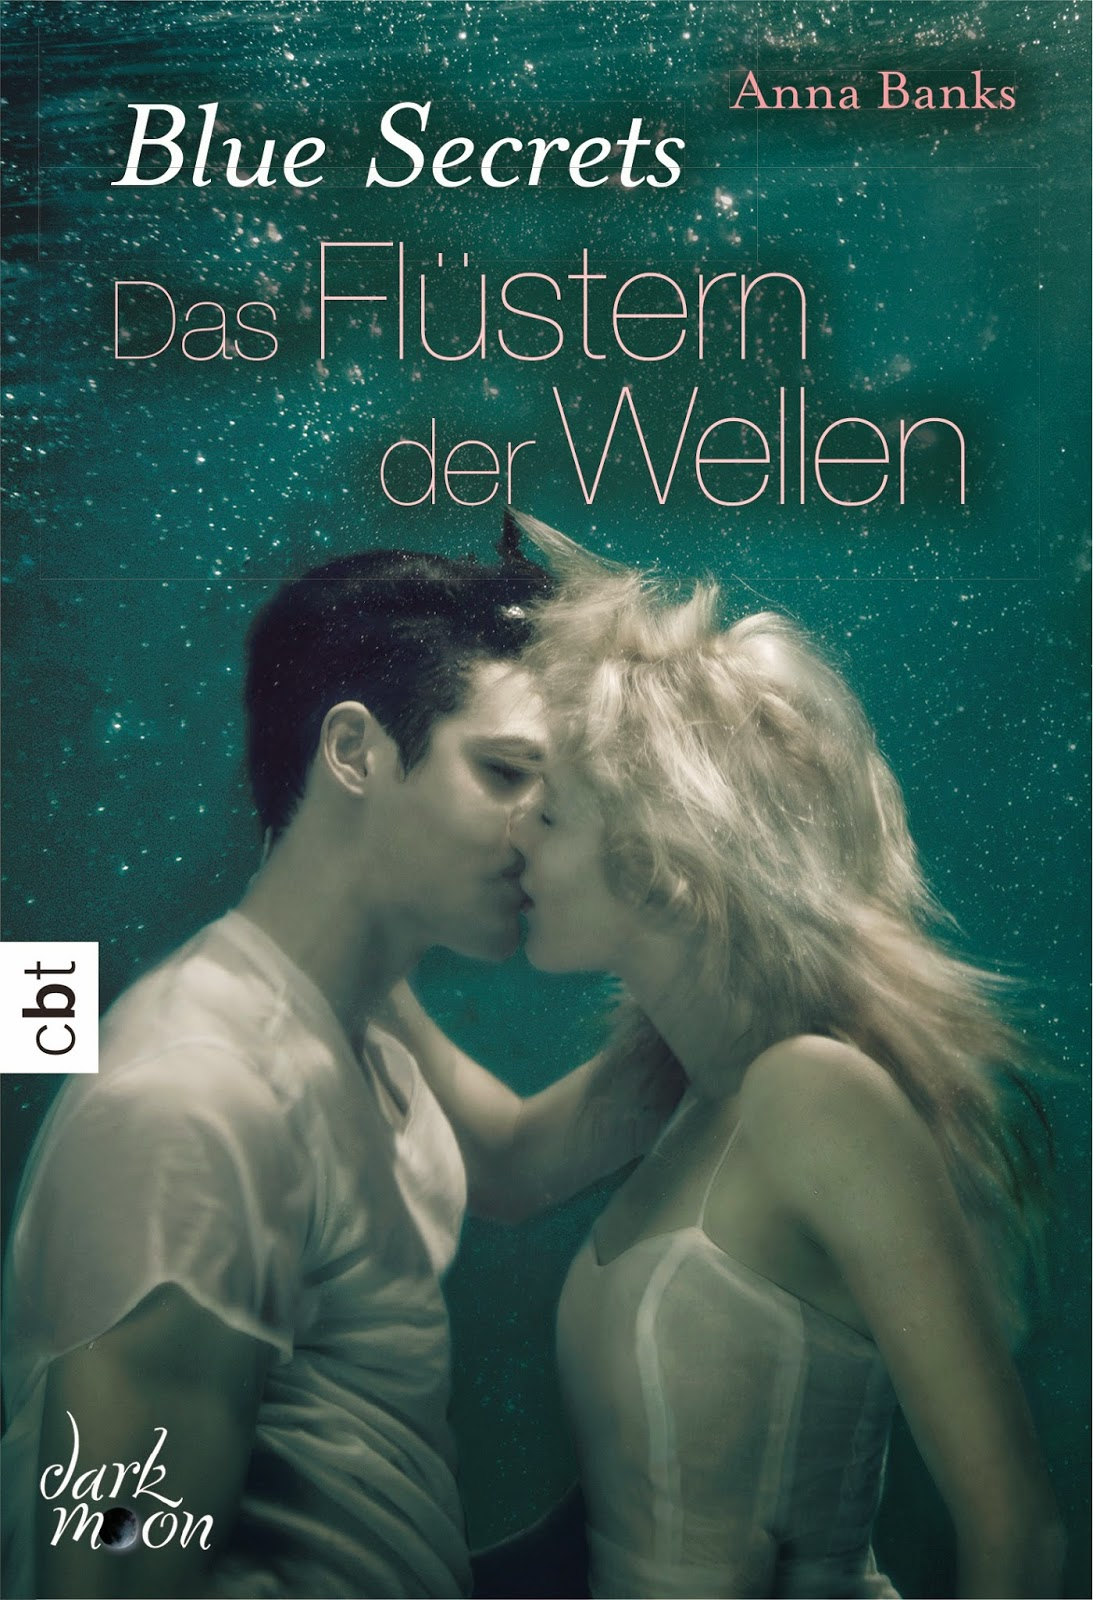 http://www.randomhouse.de/content/edition/covervoila_hires/Banks_ABlue_Secrets_02_140438.jpg